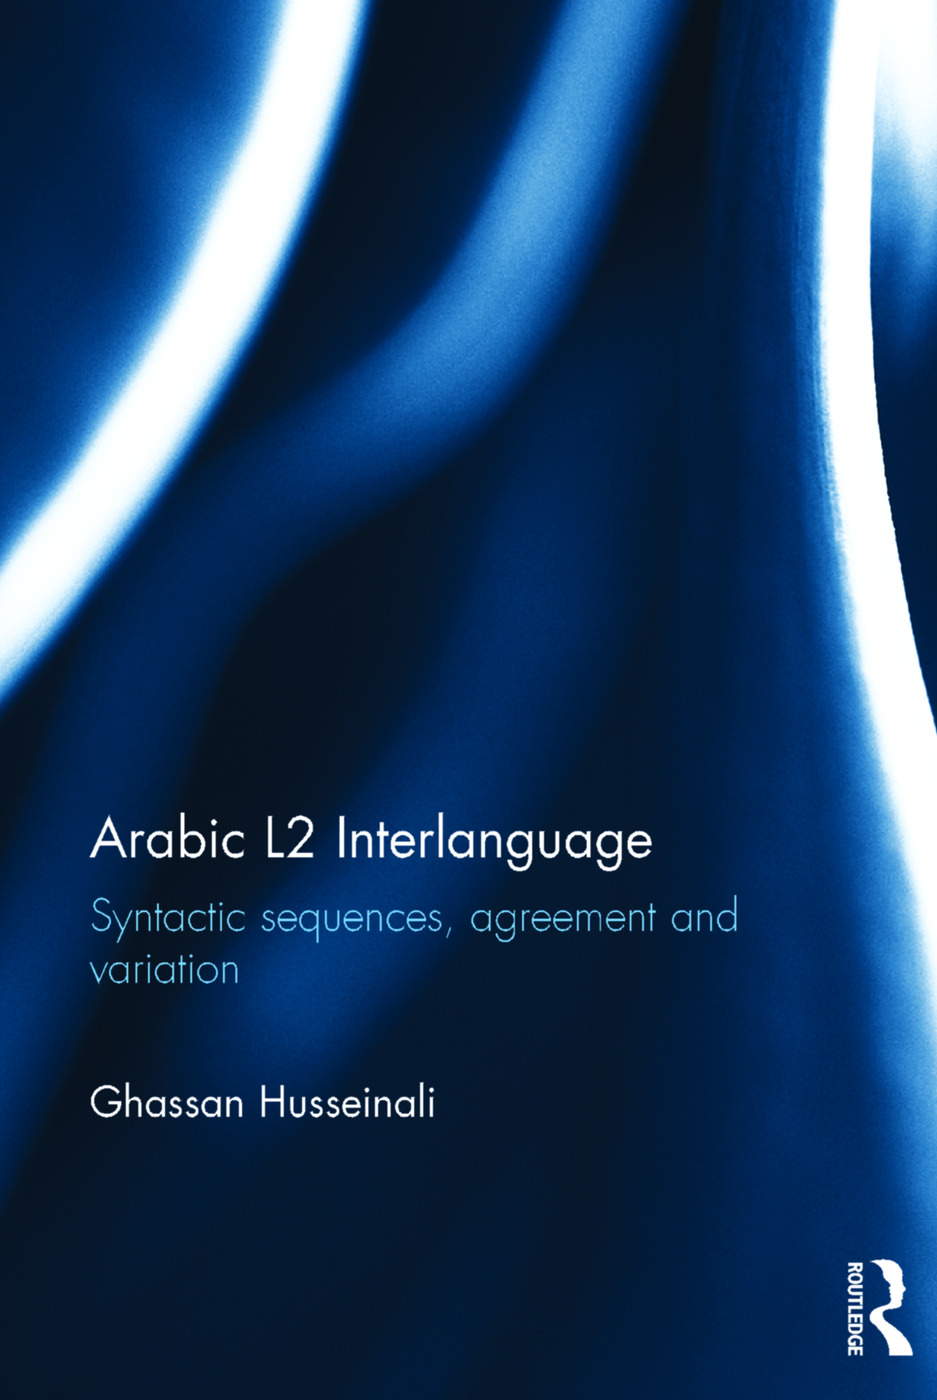 Arabic L2 Interlanguage: Syntactic sequences, agreement and variation book cover